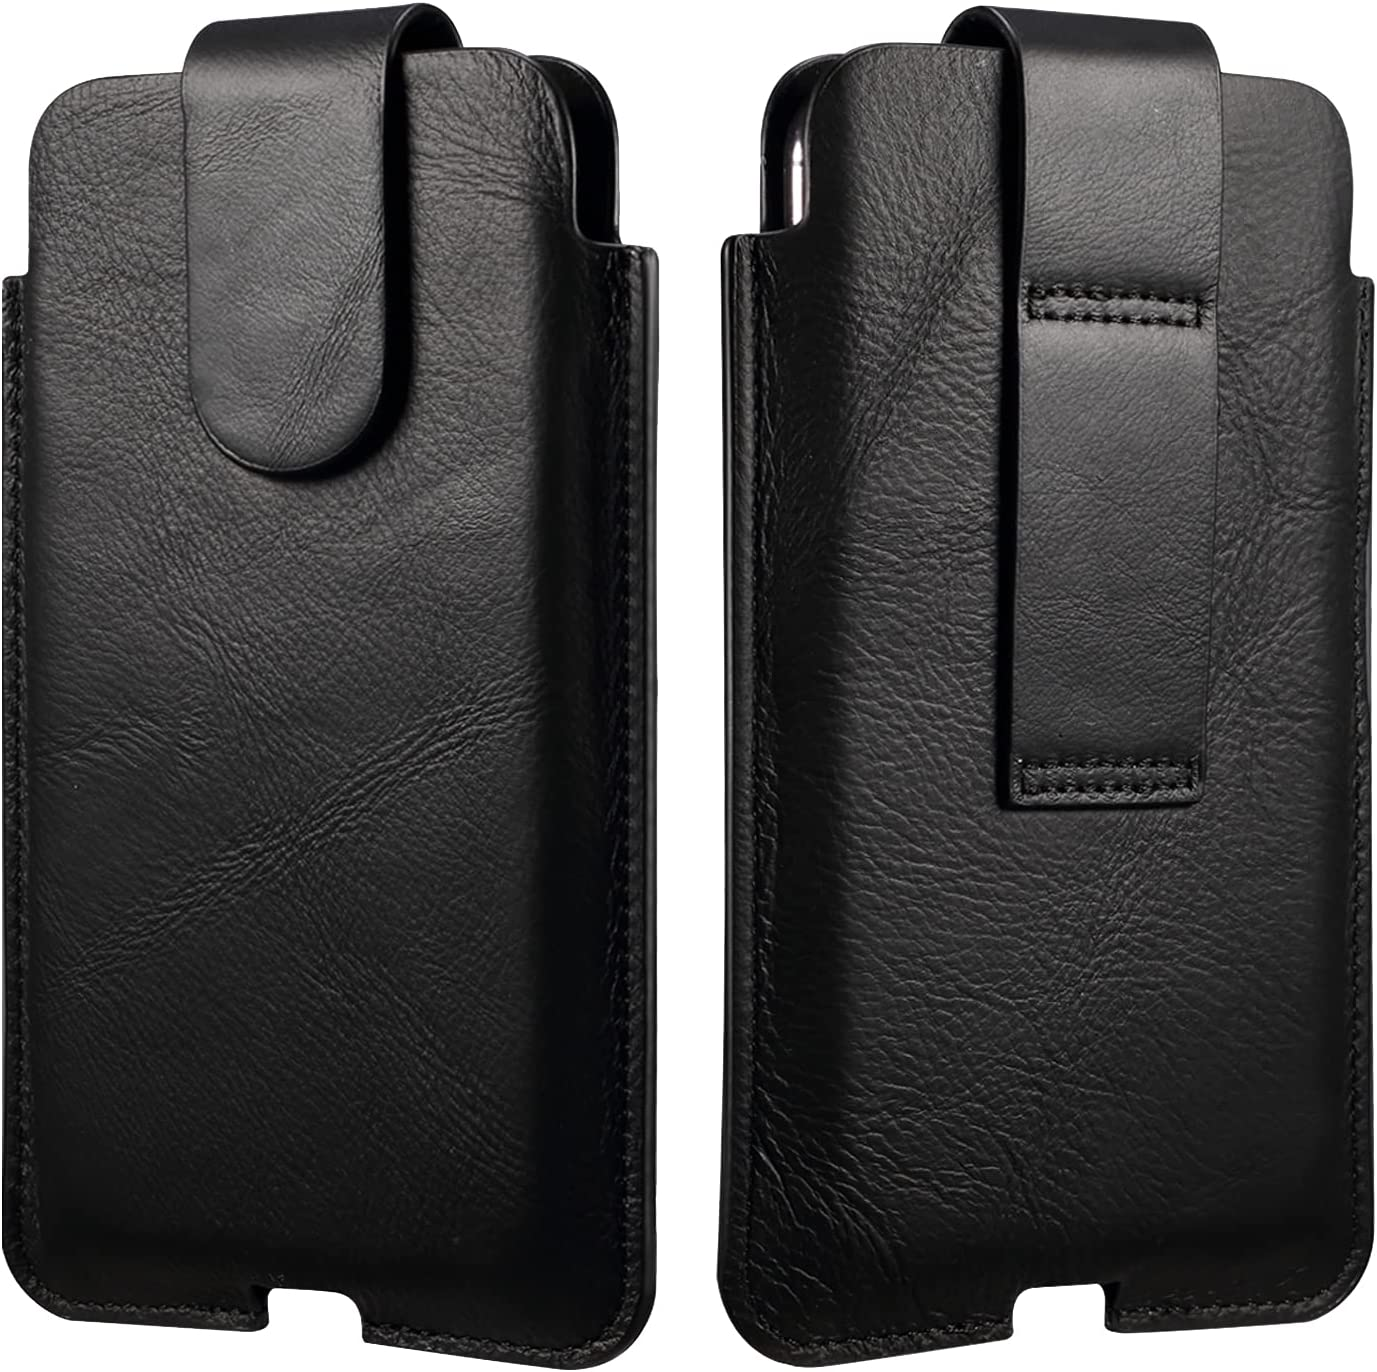 Genuine Leather Cell Phone Belt Holster for iPhone 12 Pro Max,Belt Cases for Samsung S21 Ultra 5G,S20 FE,Note 20,note20 Ultra,s21ultra,s21plus,s20ultra,s20+,for Men【Magnetic Closure】